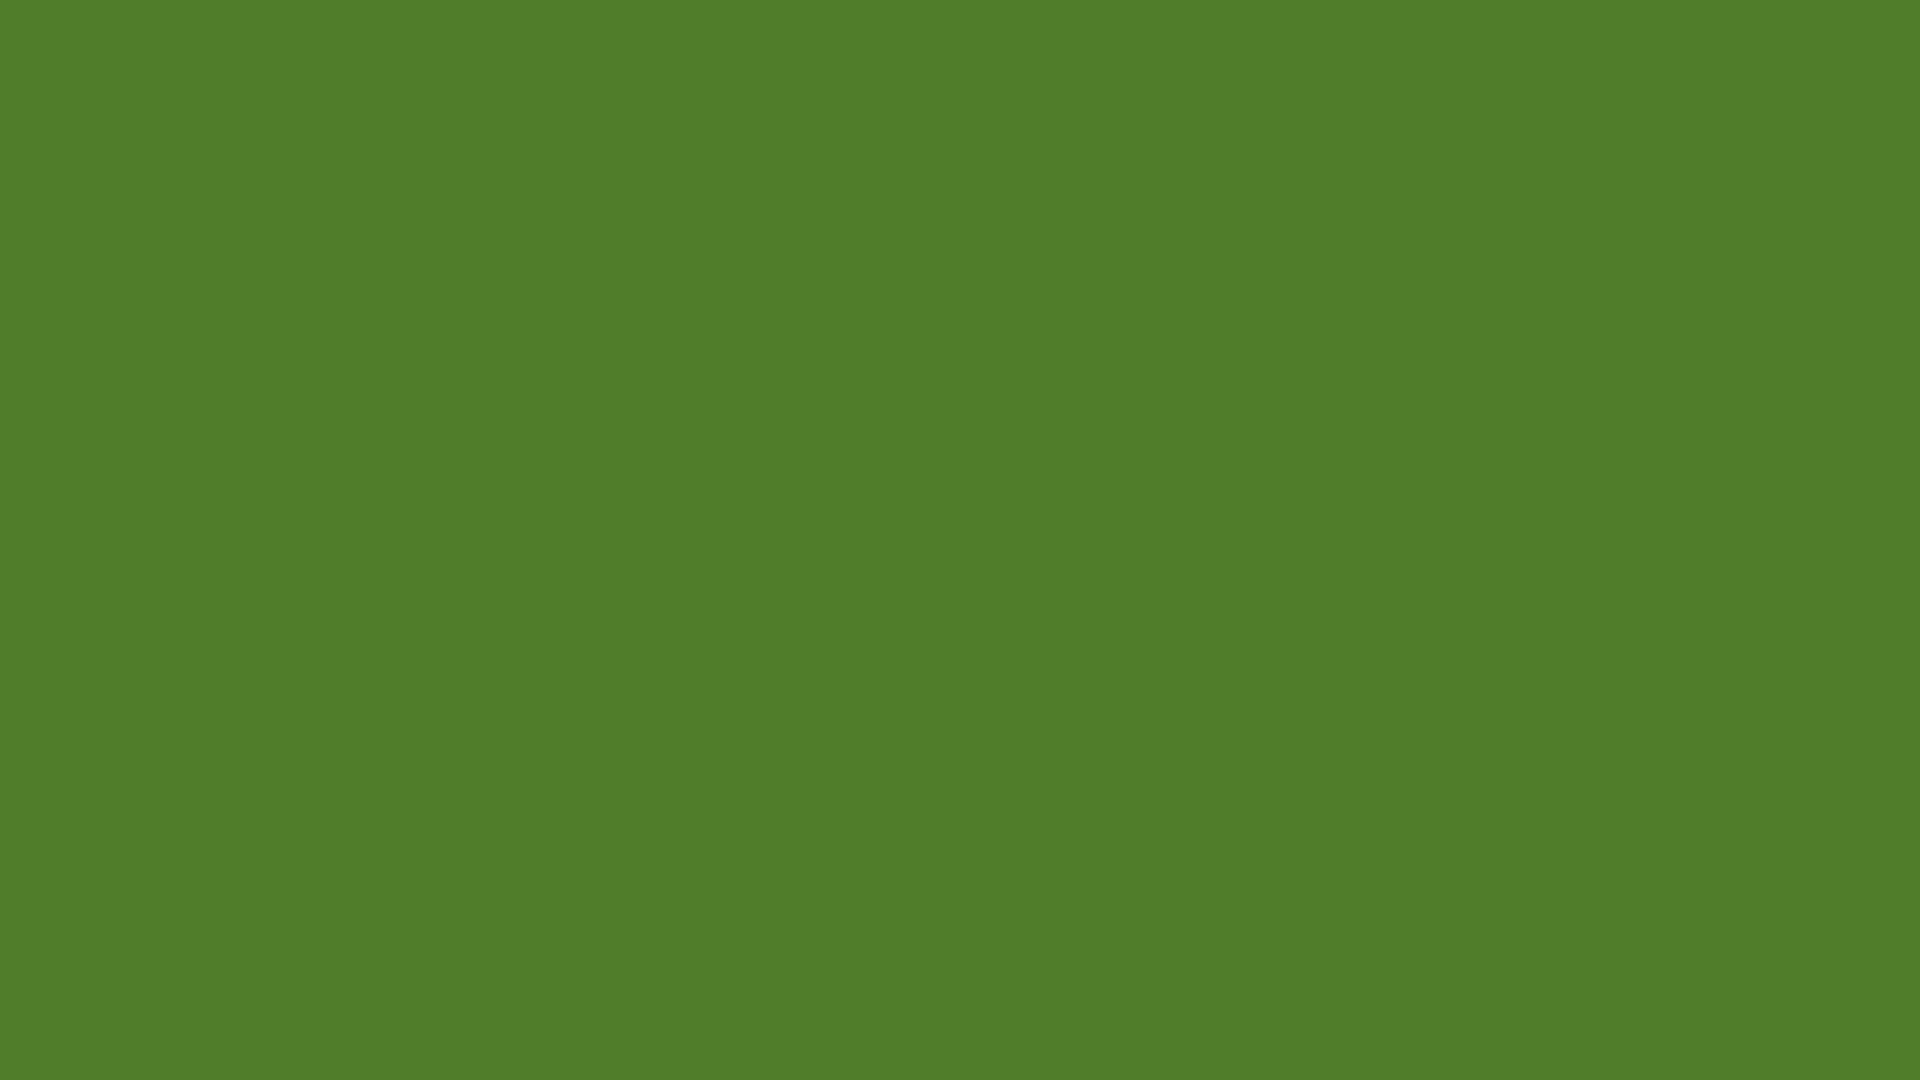 1920x1080 Sap Green Solid Color Background